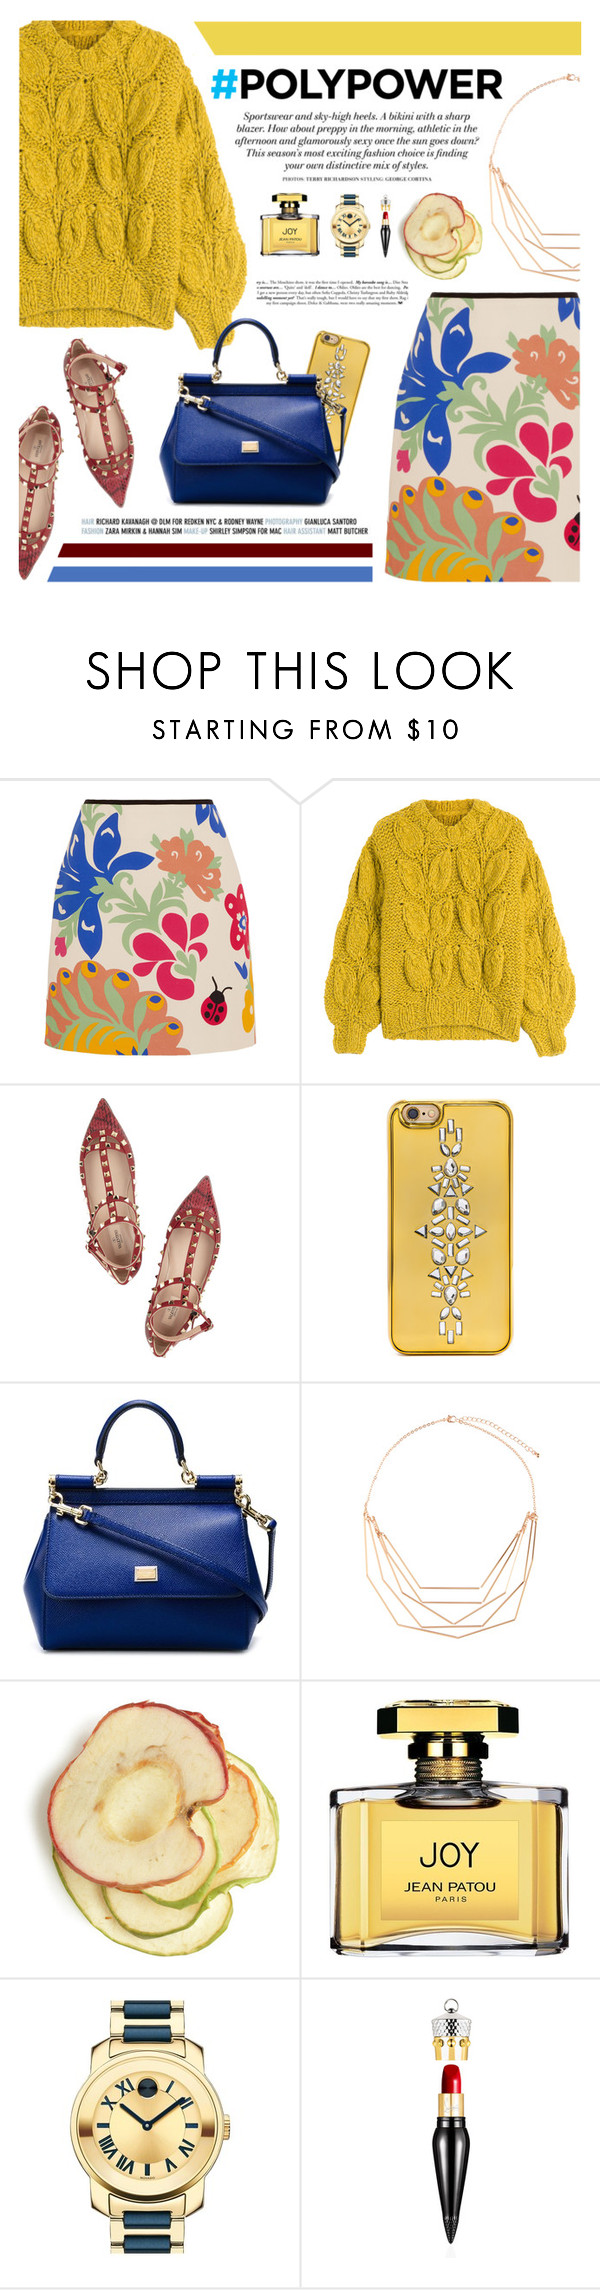 """""""#POLYPOWER"""" by defivirda ❤ liked on Polyvore featuring Victoria, Victoria Beckham, Maison Margiela, Valentino, BaubleBar, Dolce&Gabbana, Accessorize, H&M, Jean Patou, Movado and Christian Louboutin"""